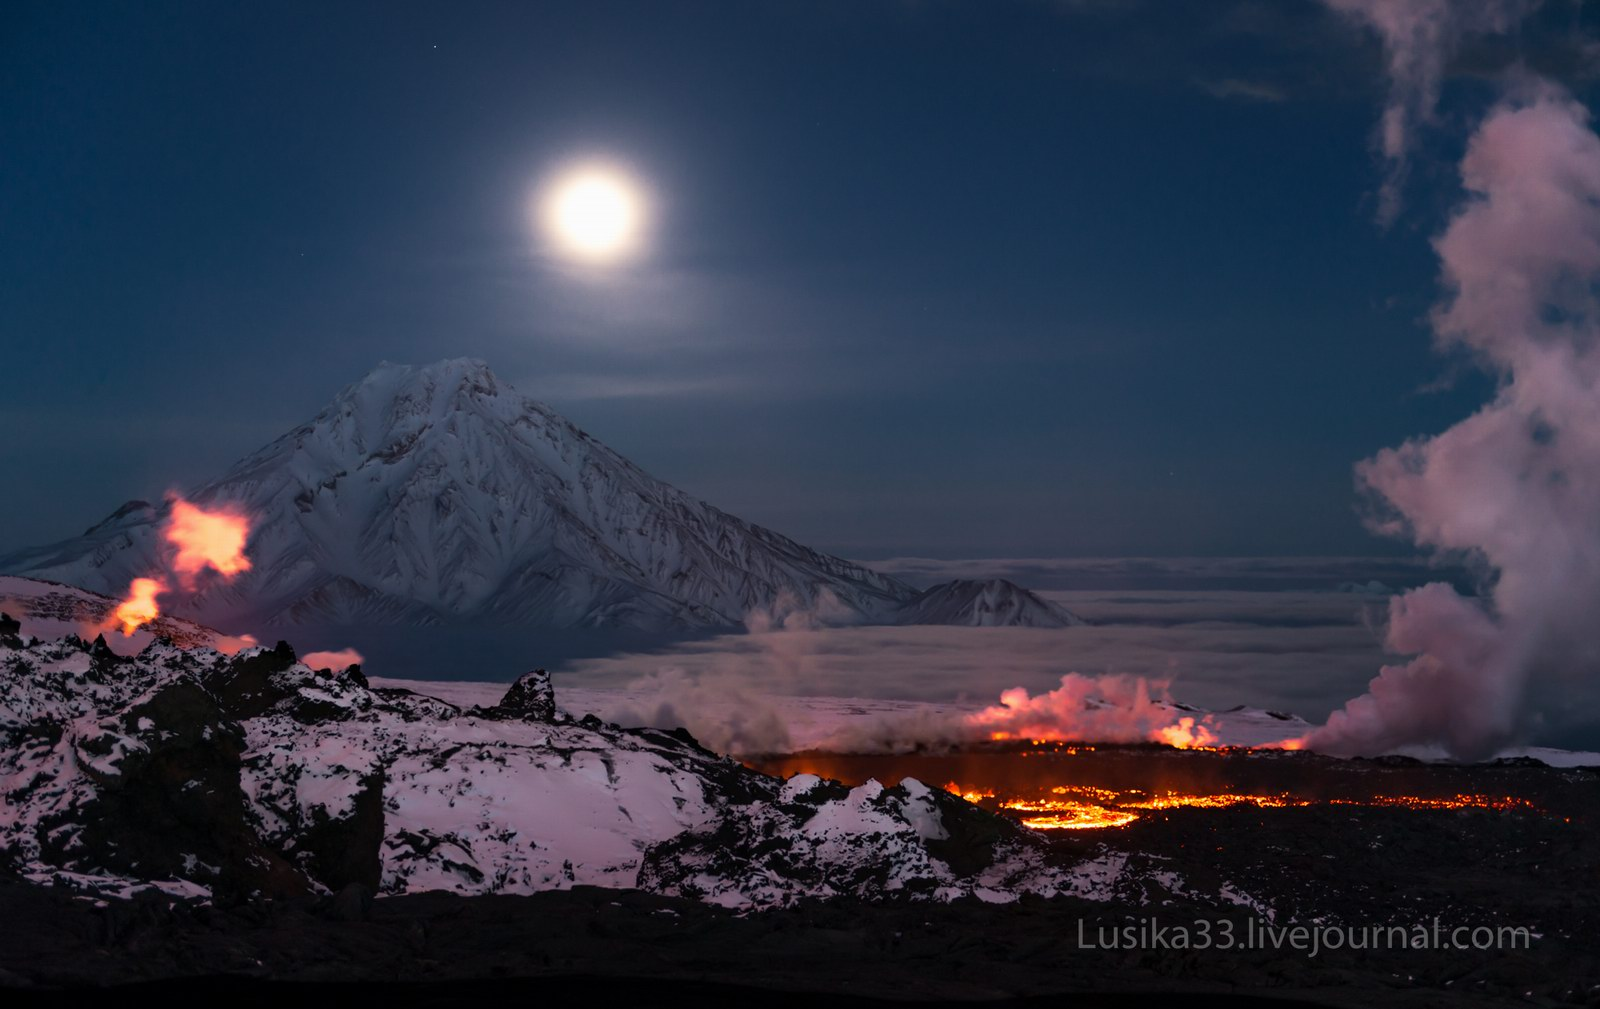 The Eruption Of The Volcano Tolbachik In Kamchatka